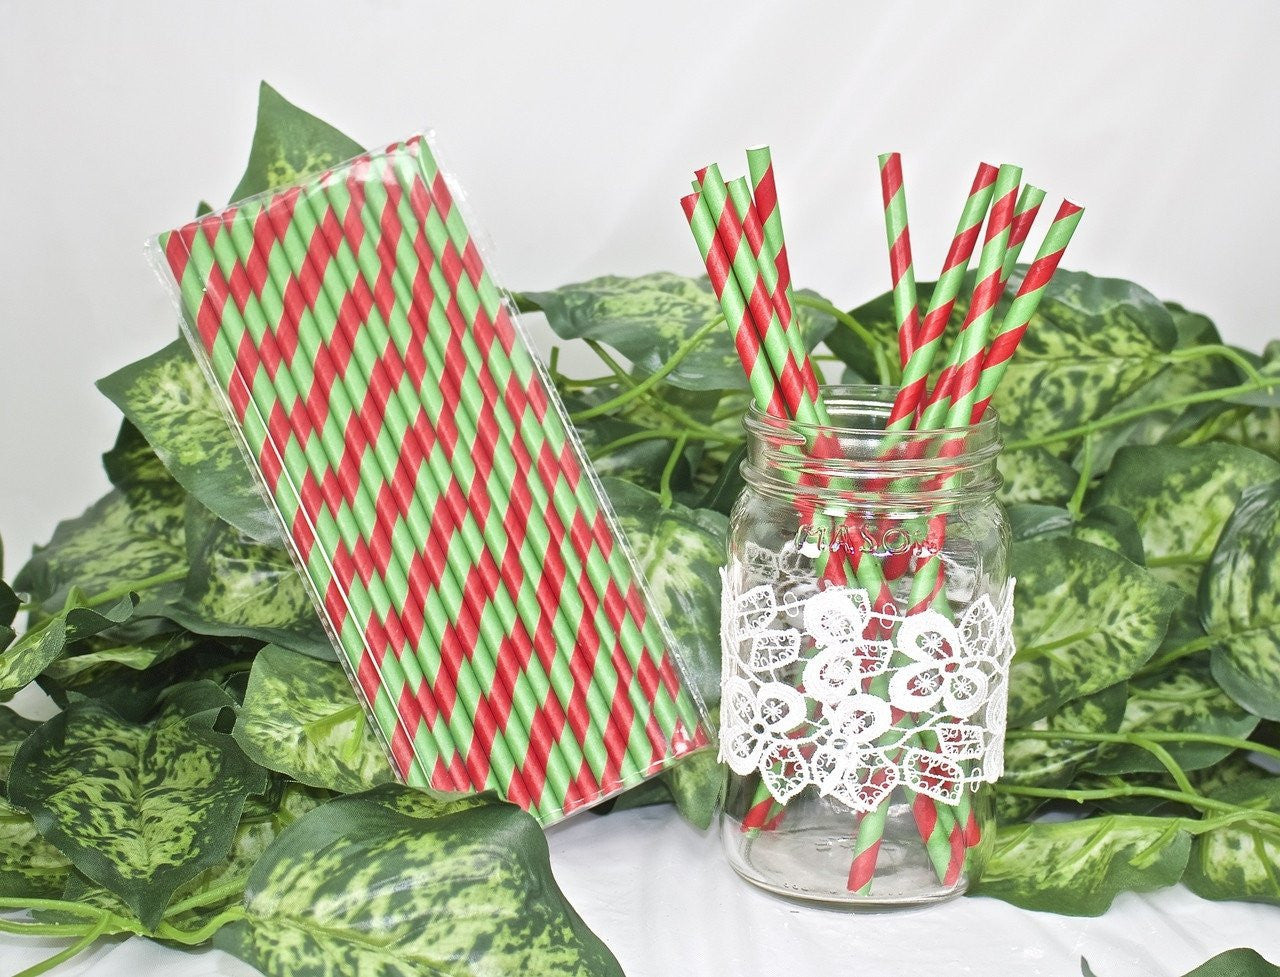 25 pcs-Paper Straws (Green & Red Stripes)